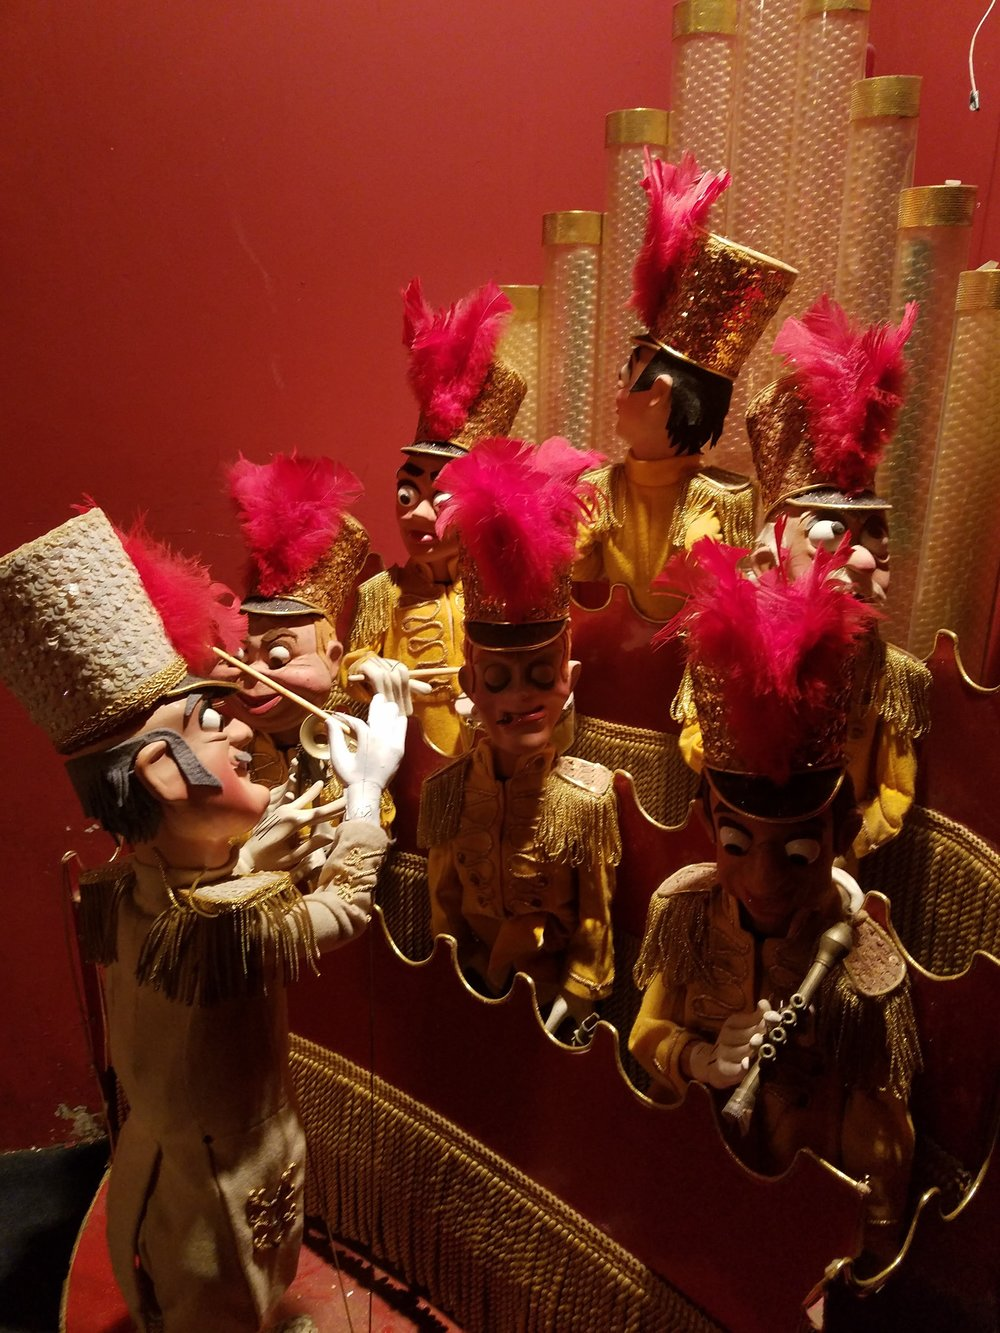 Over the course of his life, Bob Baker made several thousand puppets.  These ones were stored in one of the hallways.